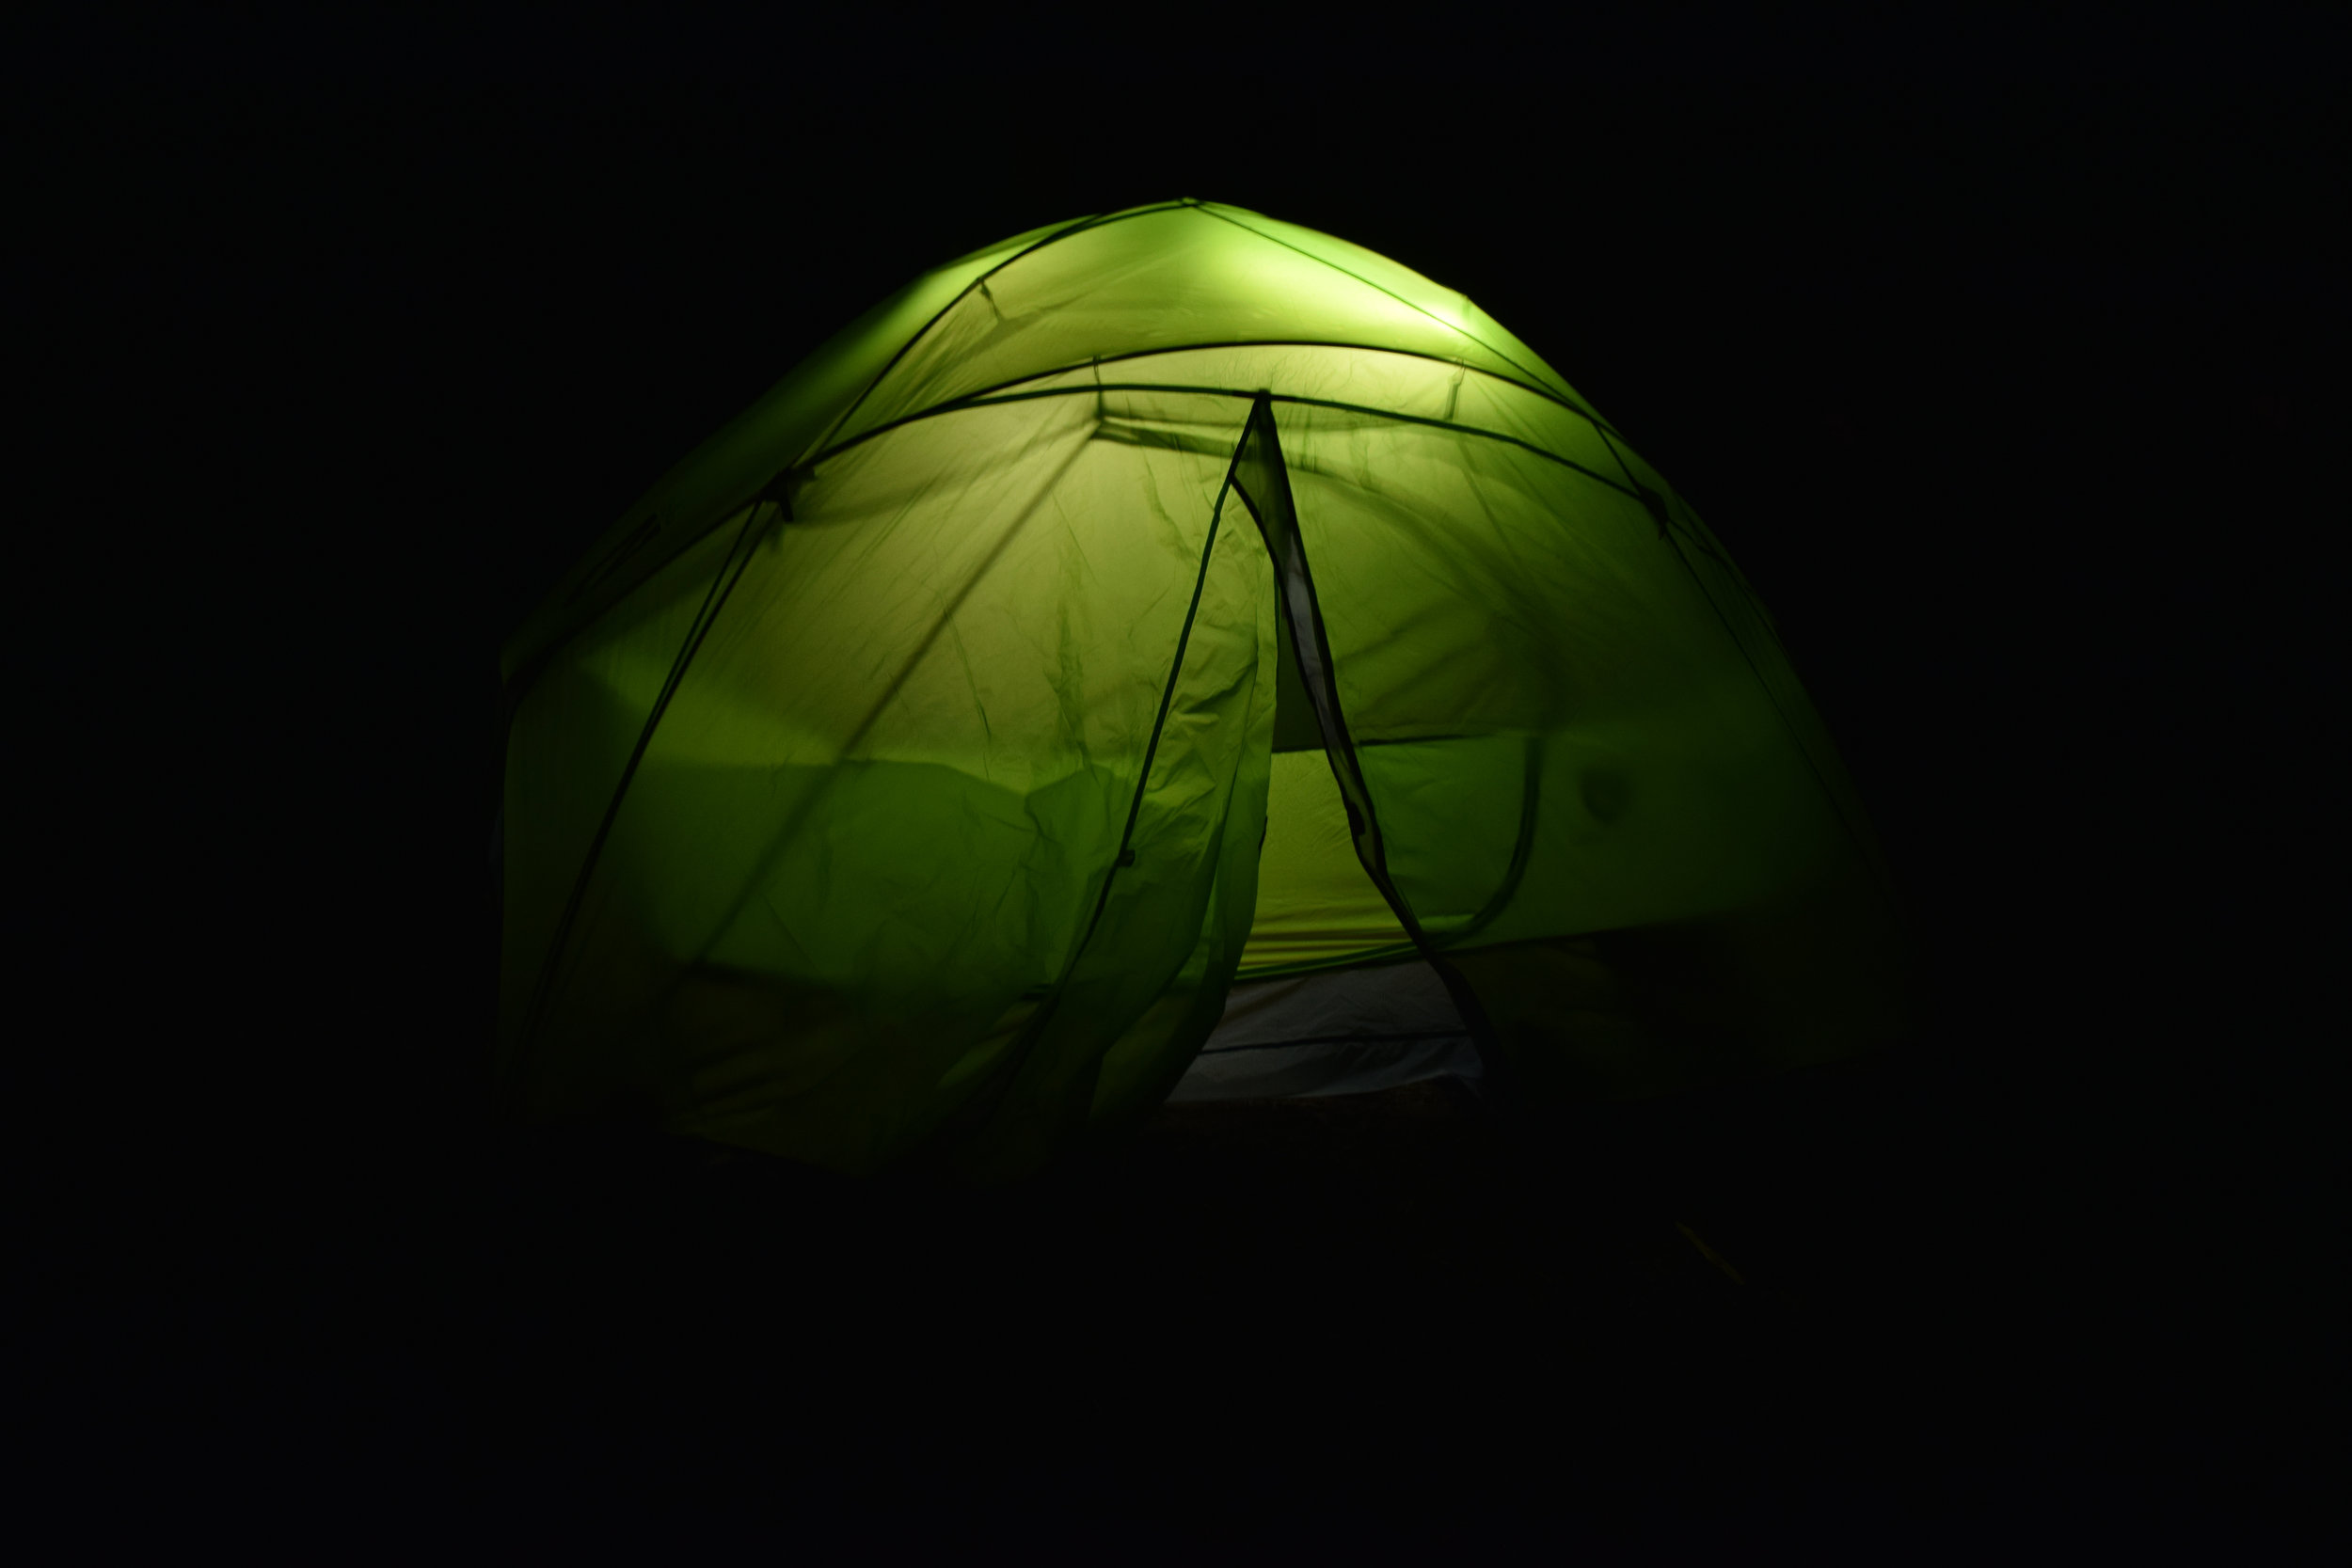 Get a luminoodle! It's a noodle that just plugs into a USB battery. You can hang it in your tent or even wear it on your backpack.